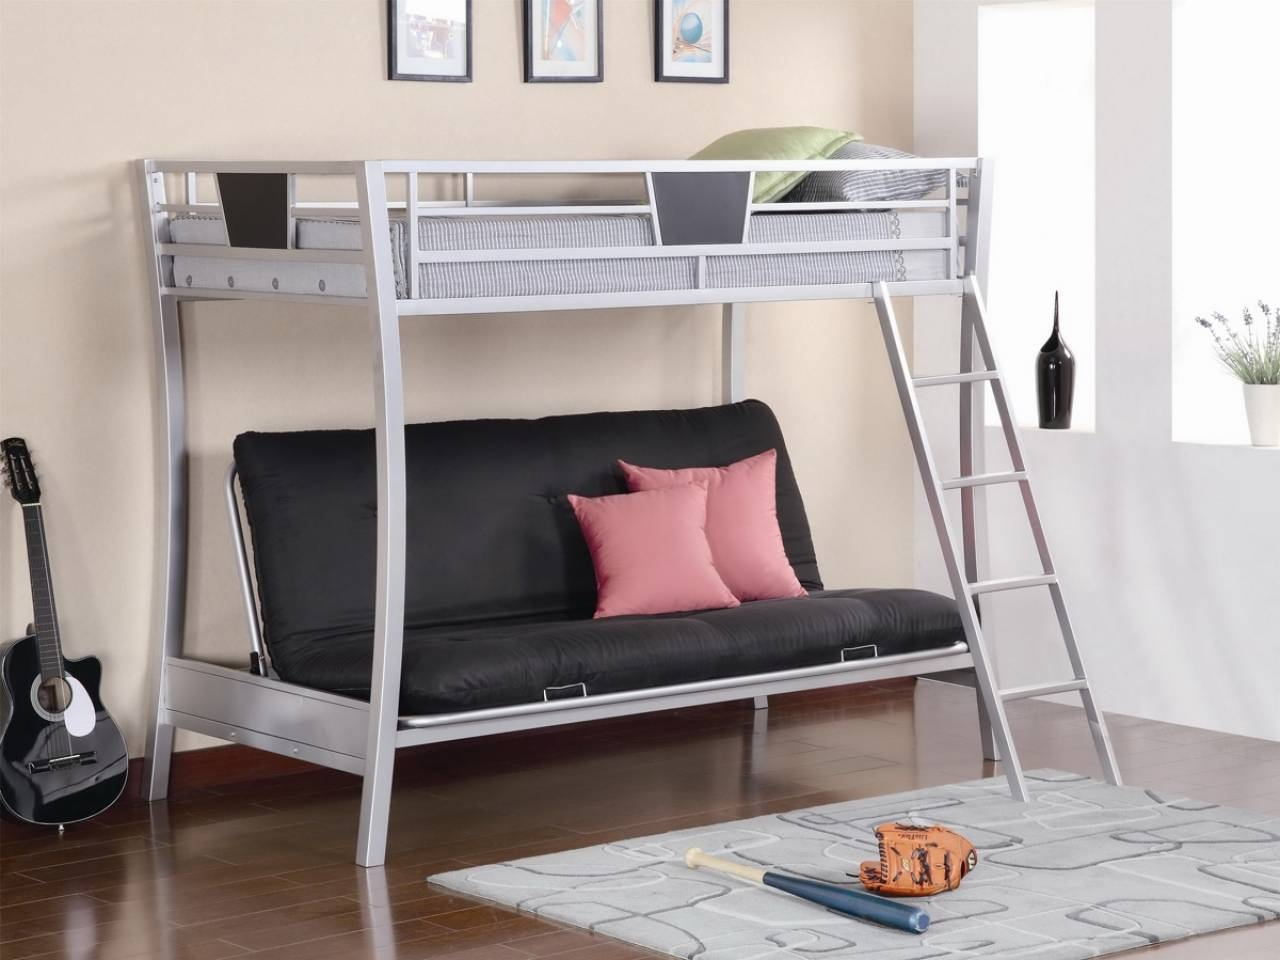 Loft Beds With Sofa Bed Underneath About Bunk #11104 - Homedessign for Bunk Bed With Sofas Underneath (Image 11 of 15)